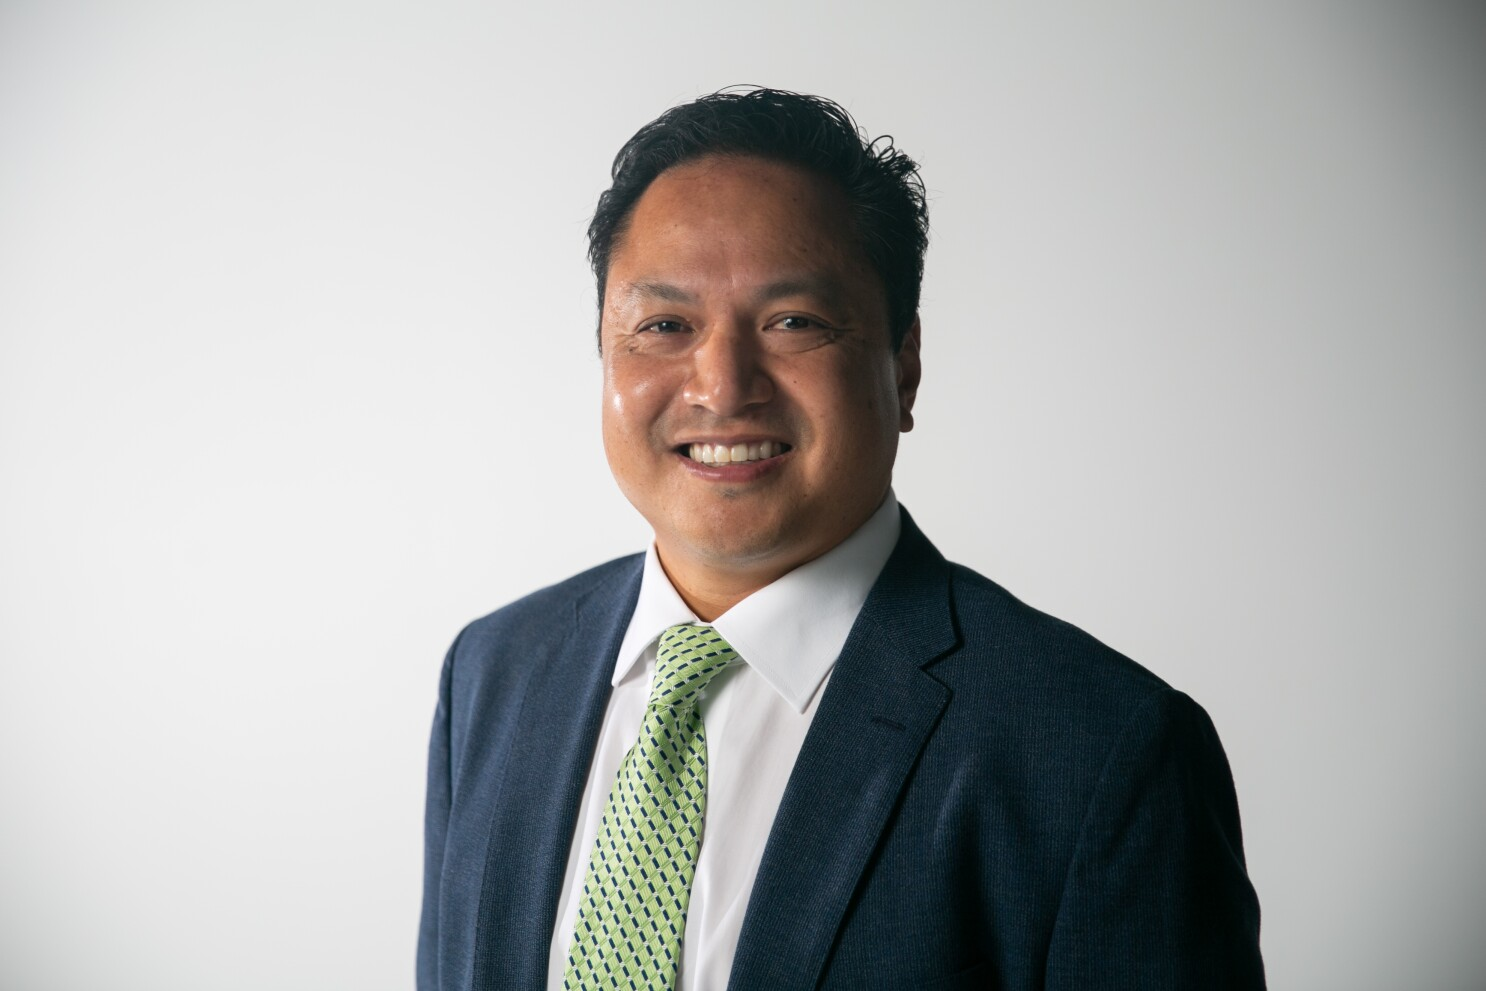 Q&A: Noli Zosa, candidate for San Diego City Council District 7